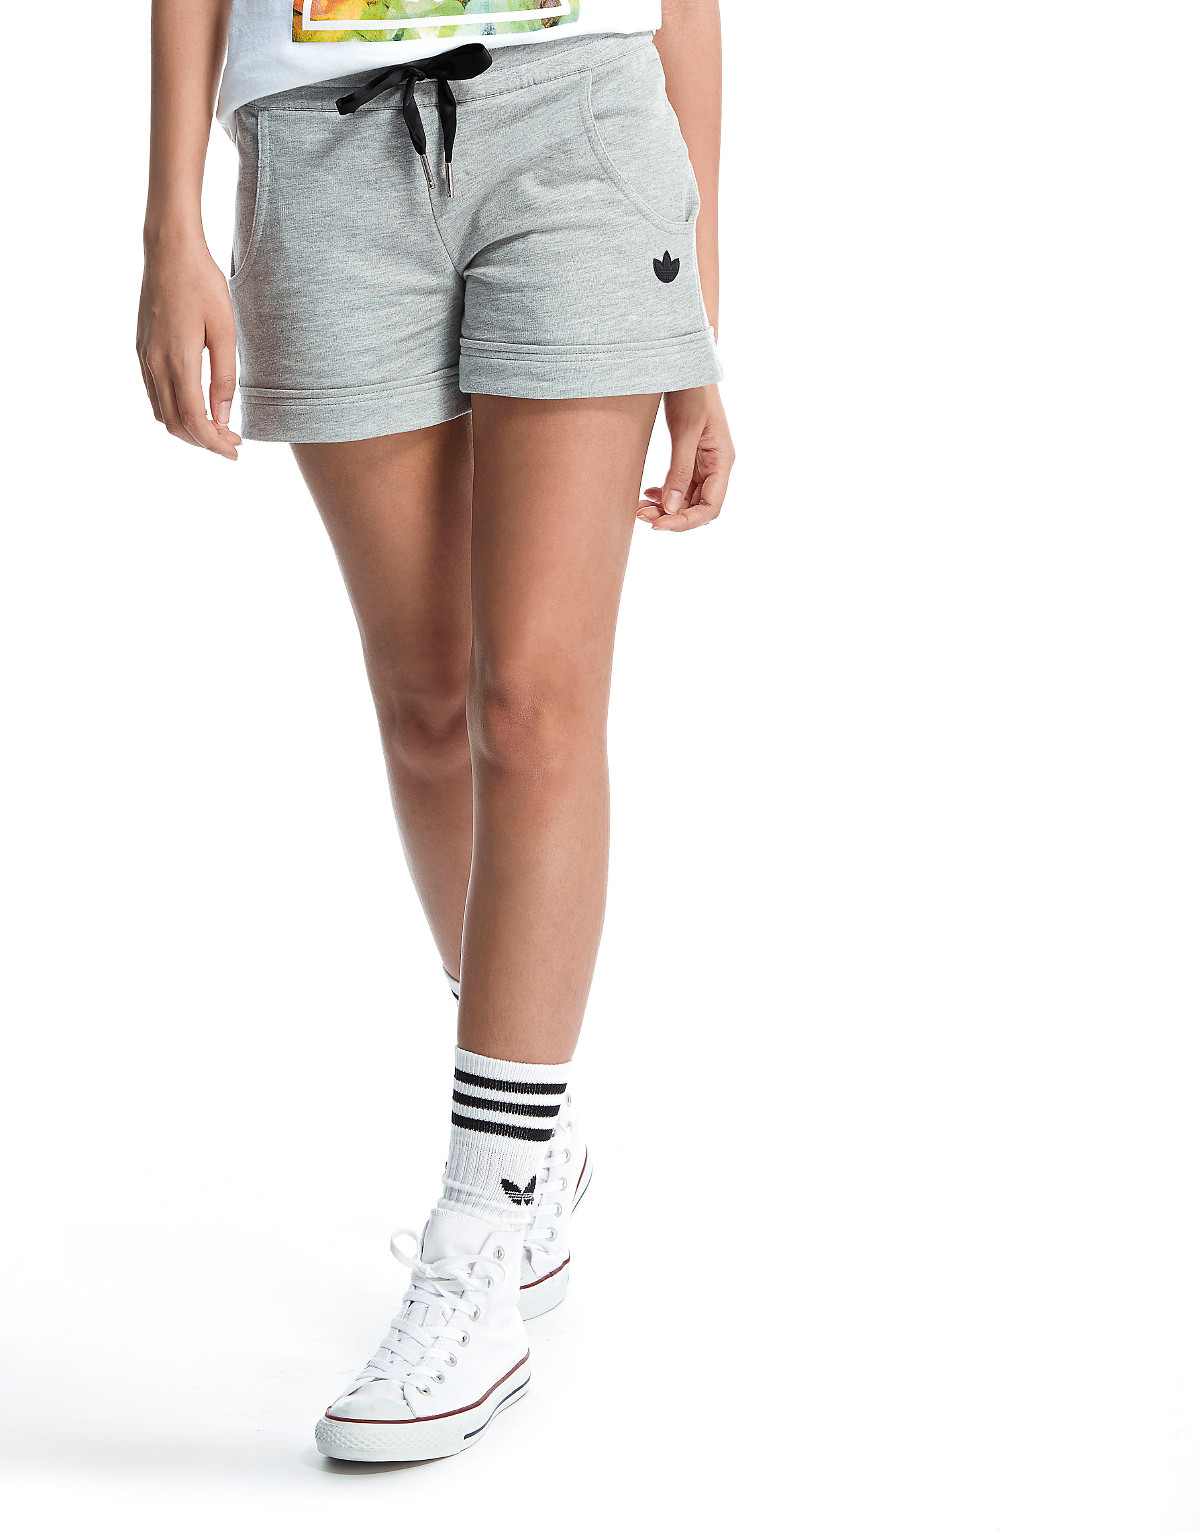 Up to 50% off Womens adidas Originals Slim Shorts - Grey/Black